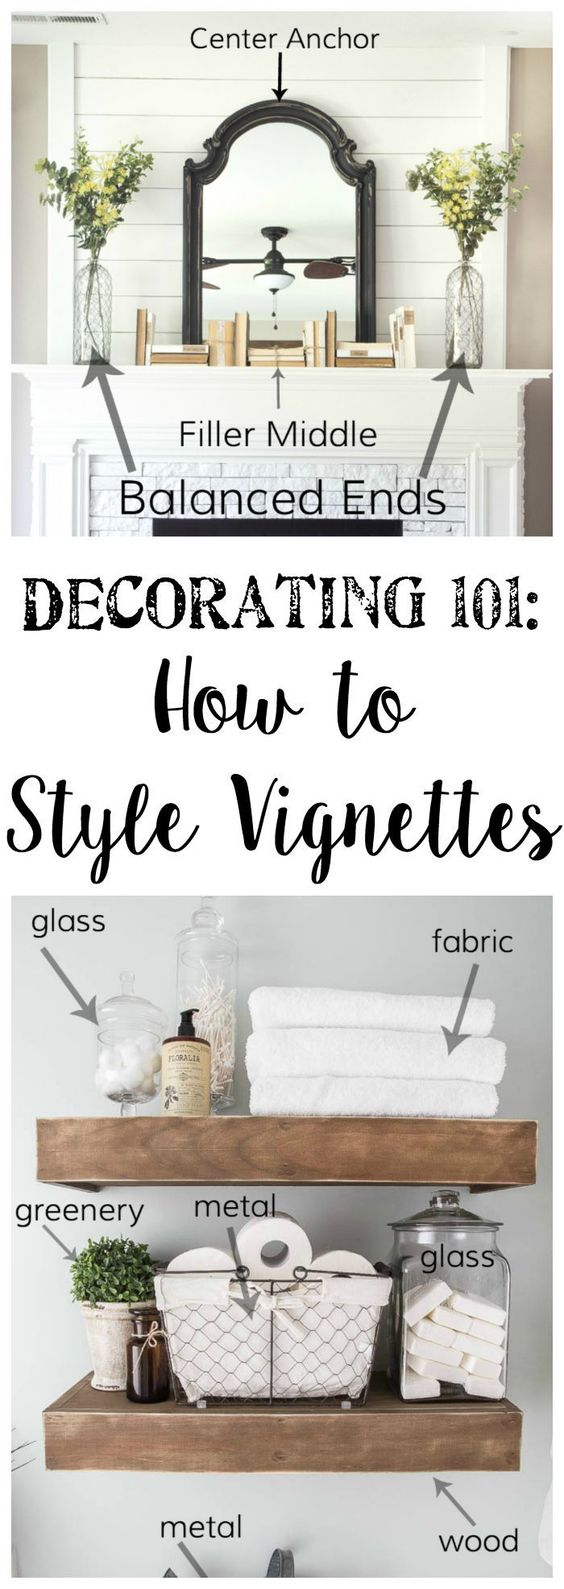 Living Room Decorating 101 decorating 101 vignette styling vignettes how to style and blesser house